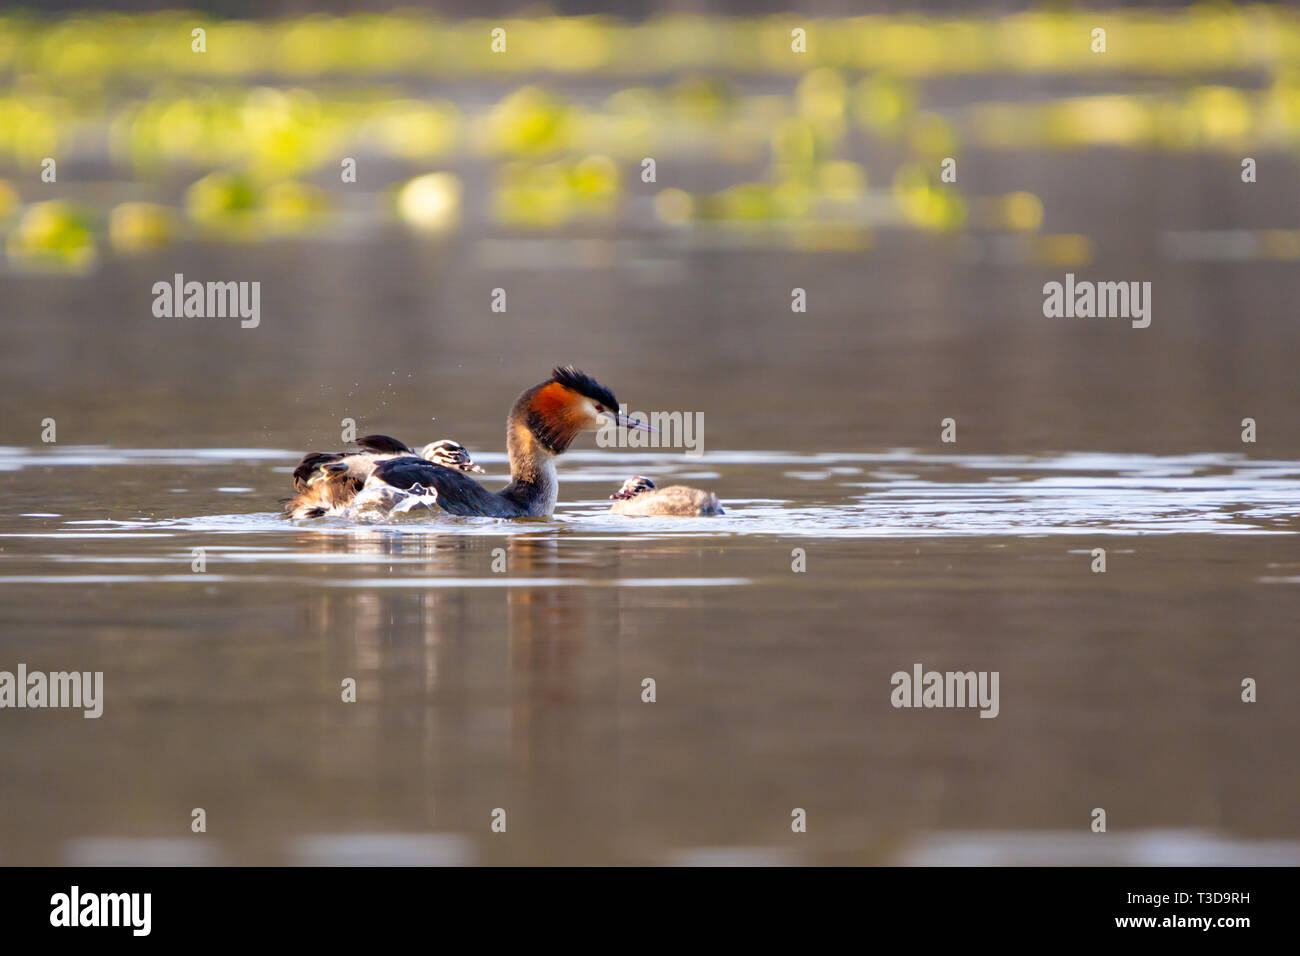 Colour wildlife portrait photograph of adult Great crested grebe (Podiceps cristatus) with chick on back whilst swimming on water. Taken on Hatchpond, - Stock Image